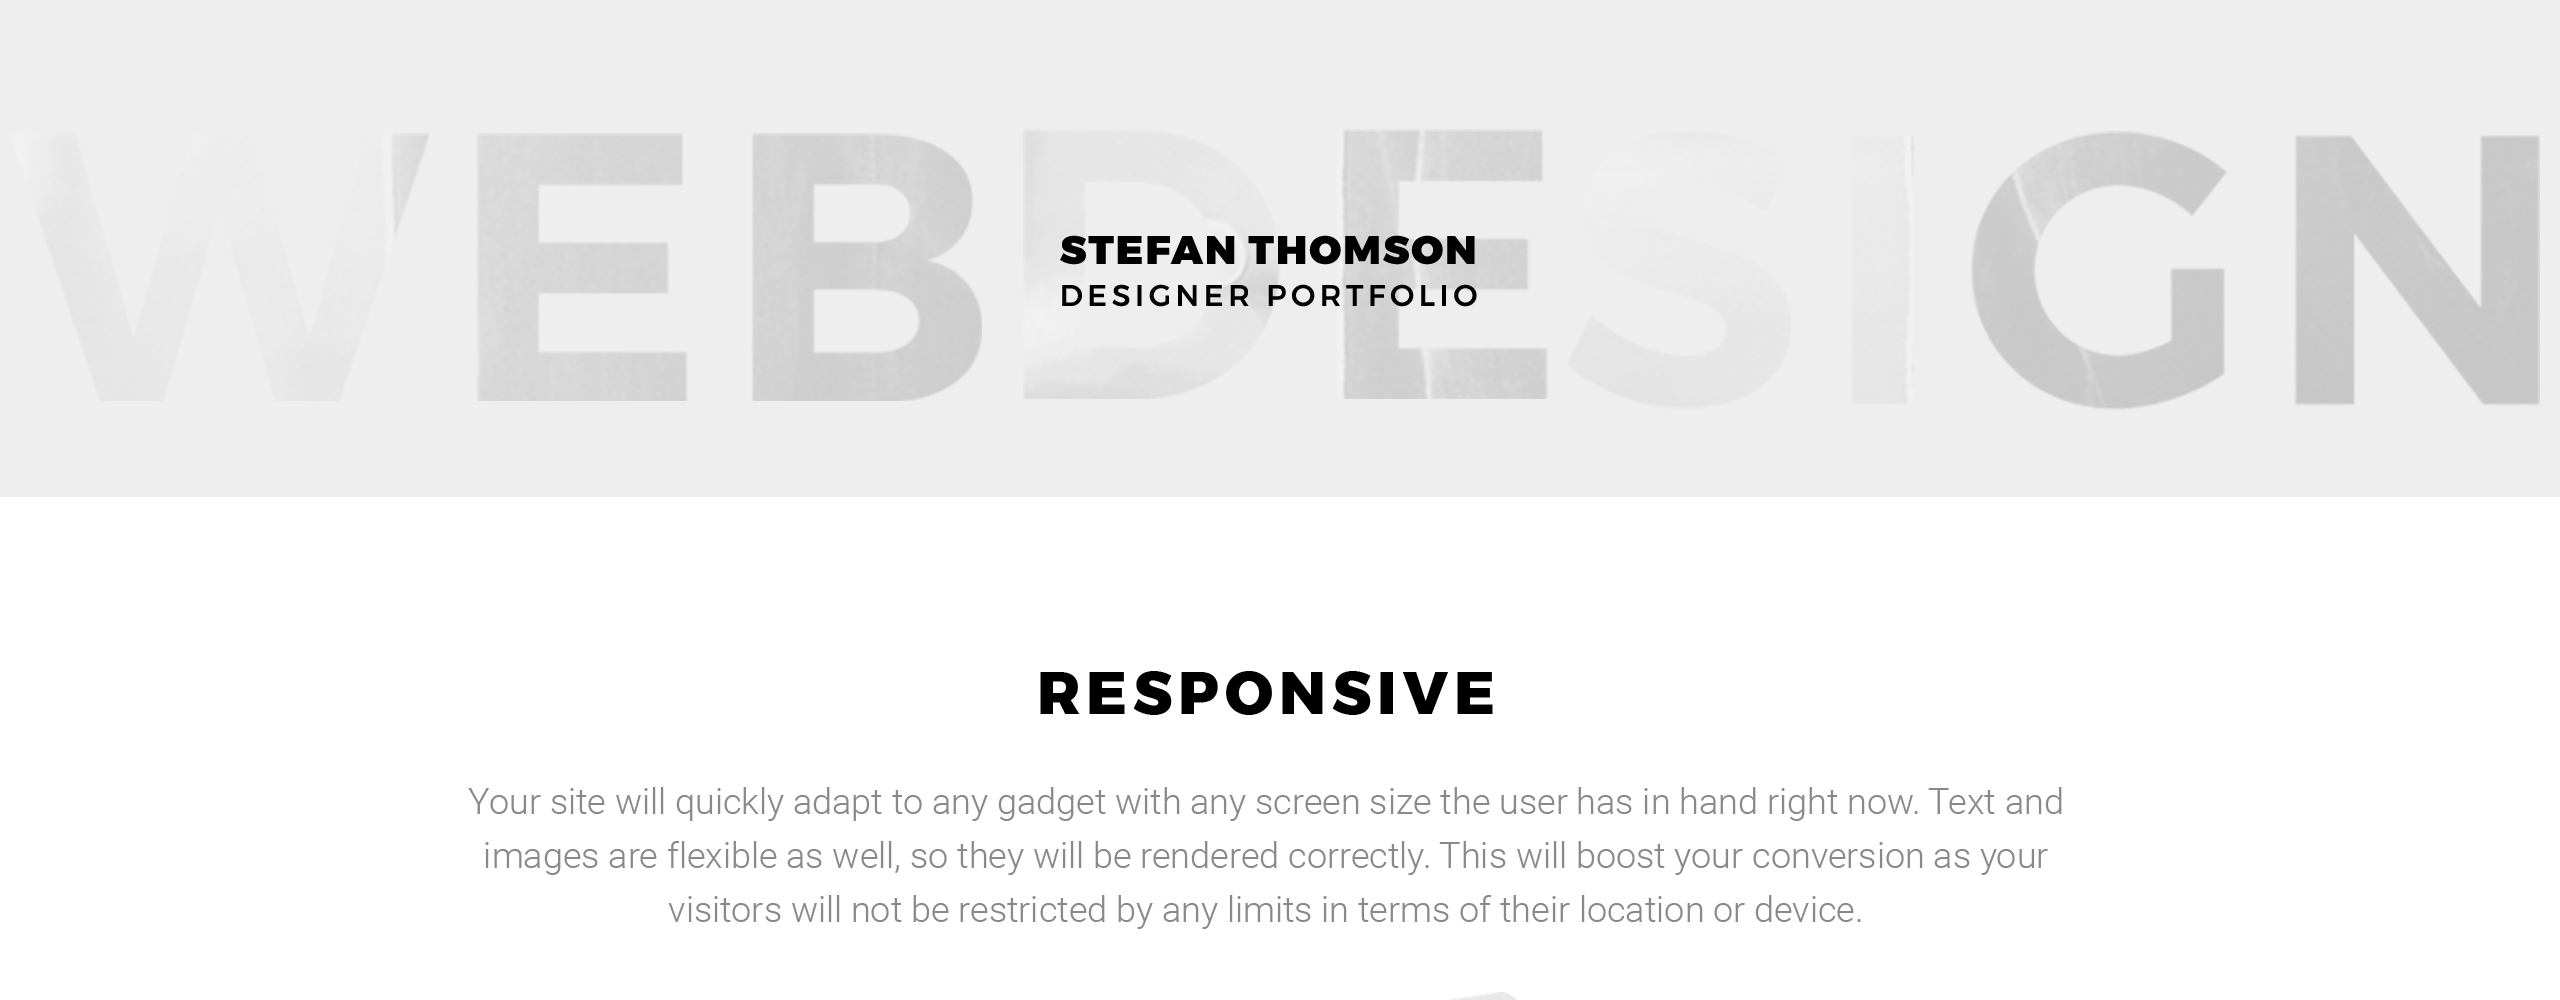 Website Design Template 67286 - project business service video videographer studio agency